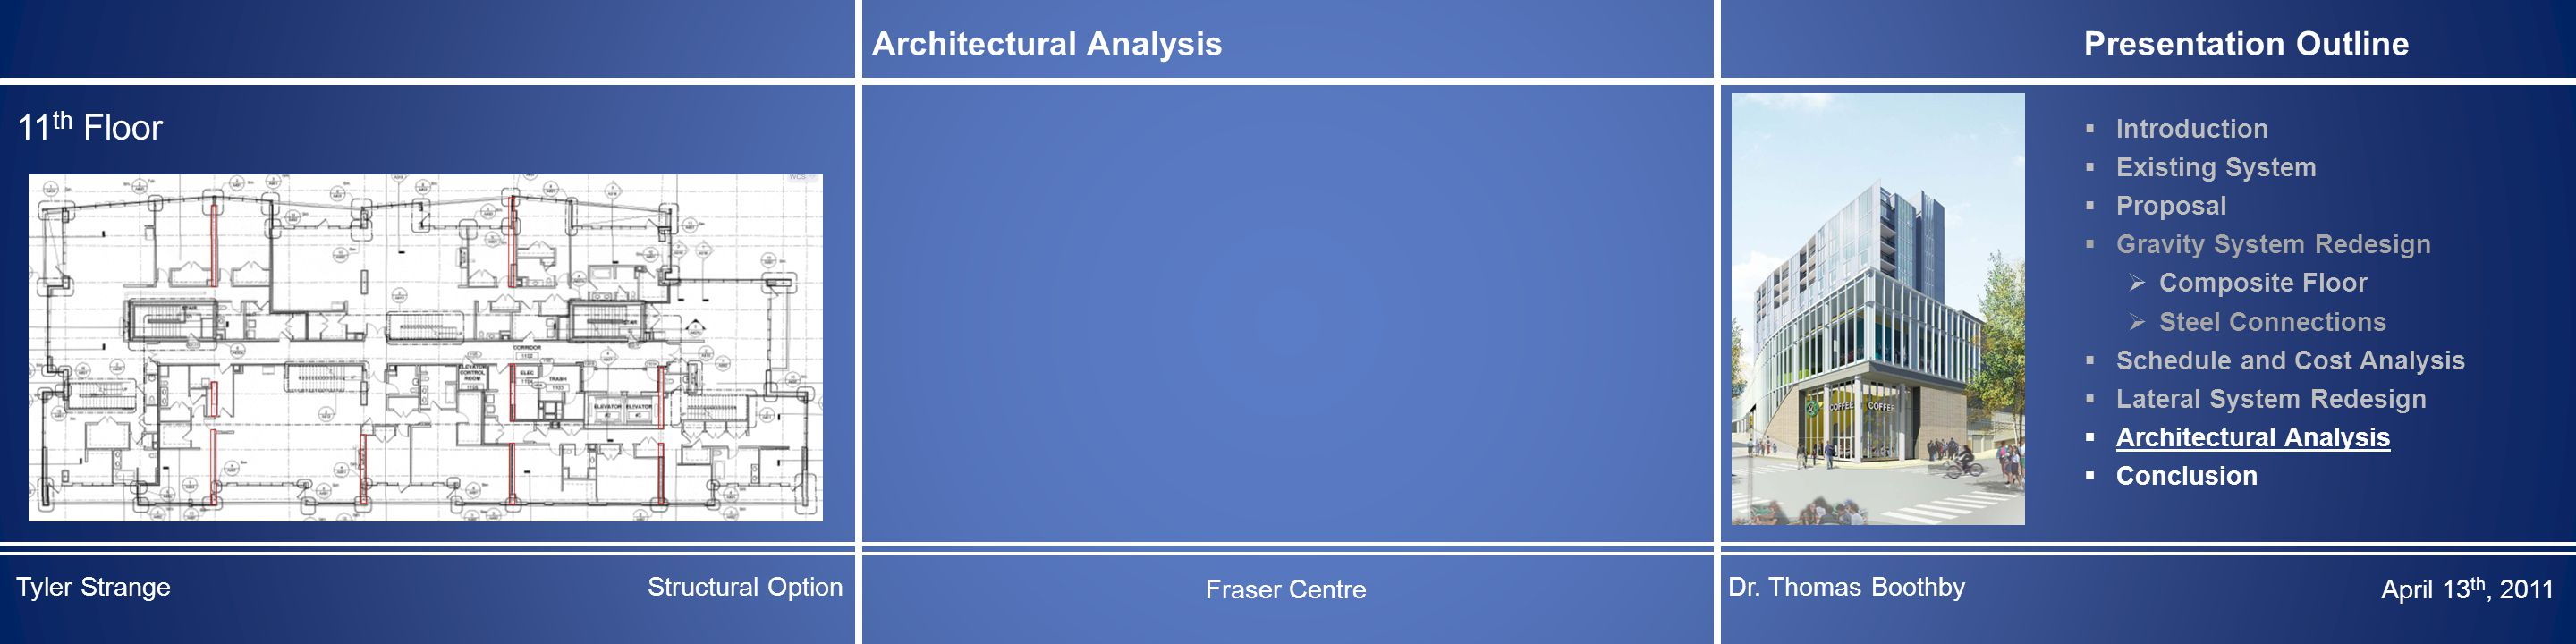 Architectural Analysis Presentation Outline  Introduction  Existing System  Proposal  Gravity System Redesign  Composite Floor  Steel Connections  Schedule and Cost Analysis  Lateral System Redesign  Architectural Analysis  Conclusion 11 th Floor Tyler StrangeStructural Option Fraser Centre Dr.